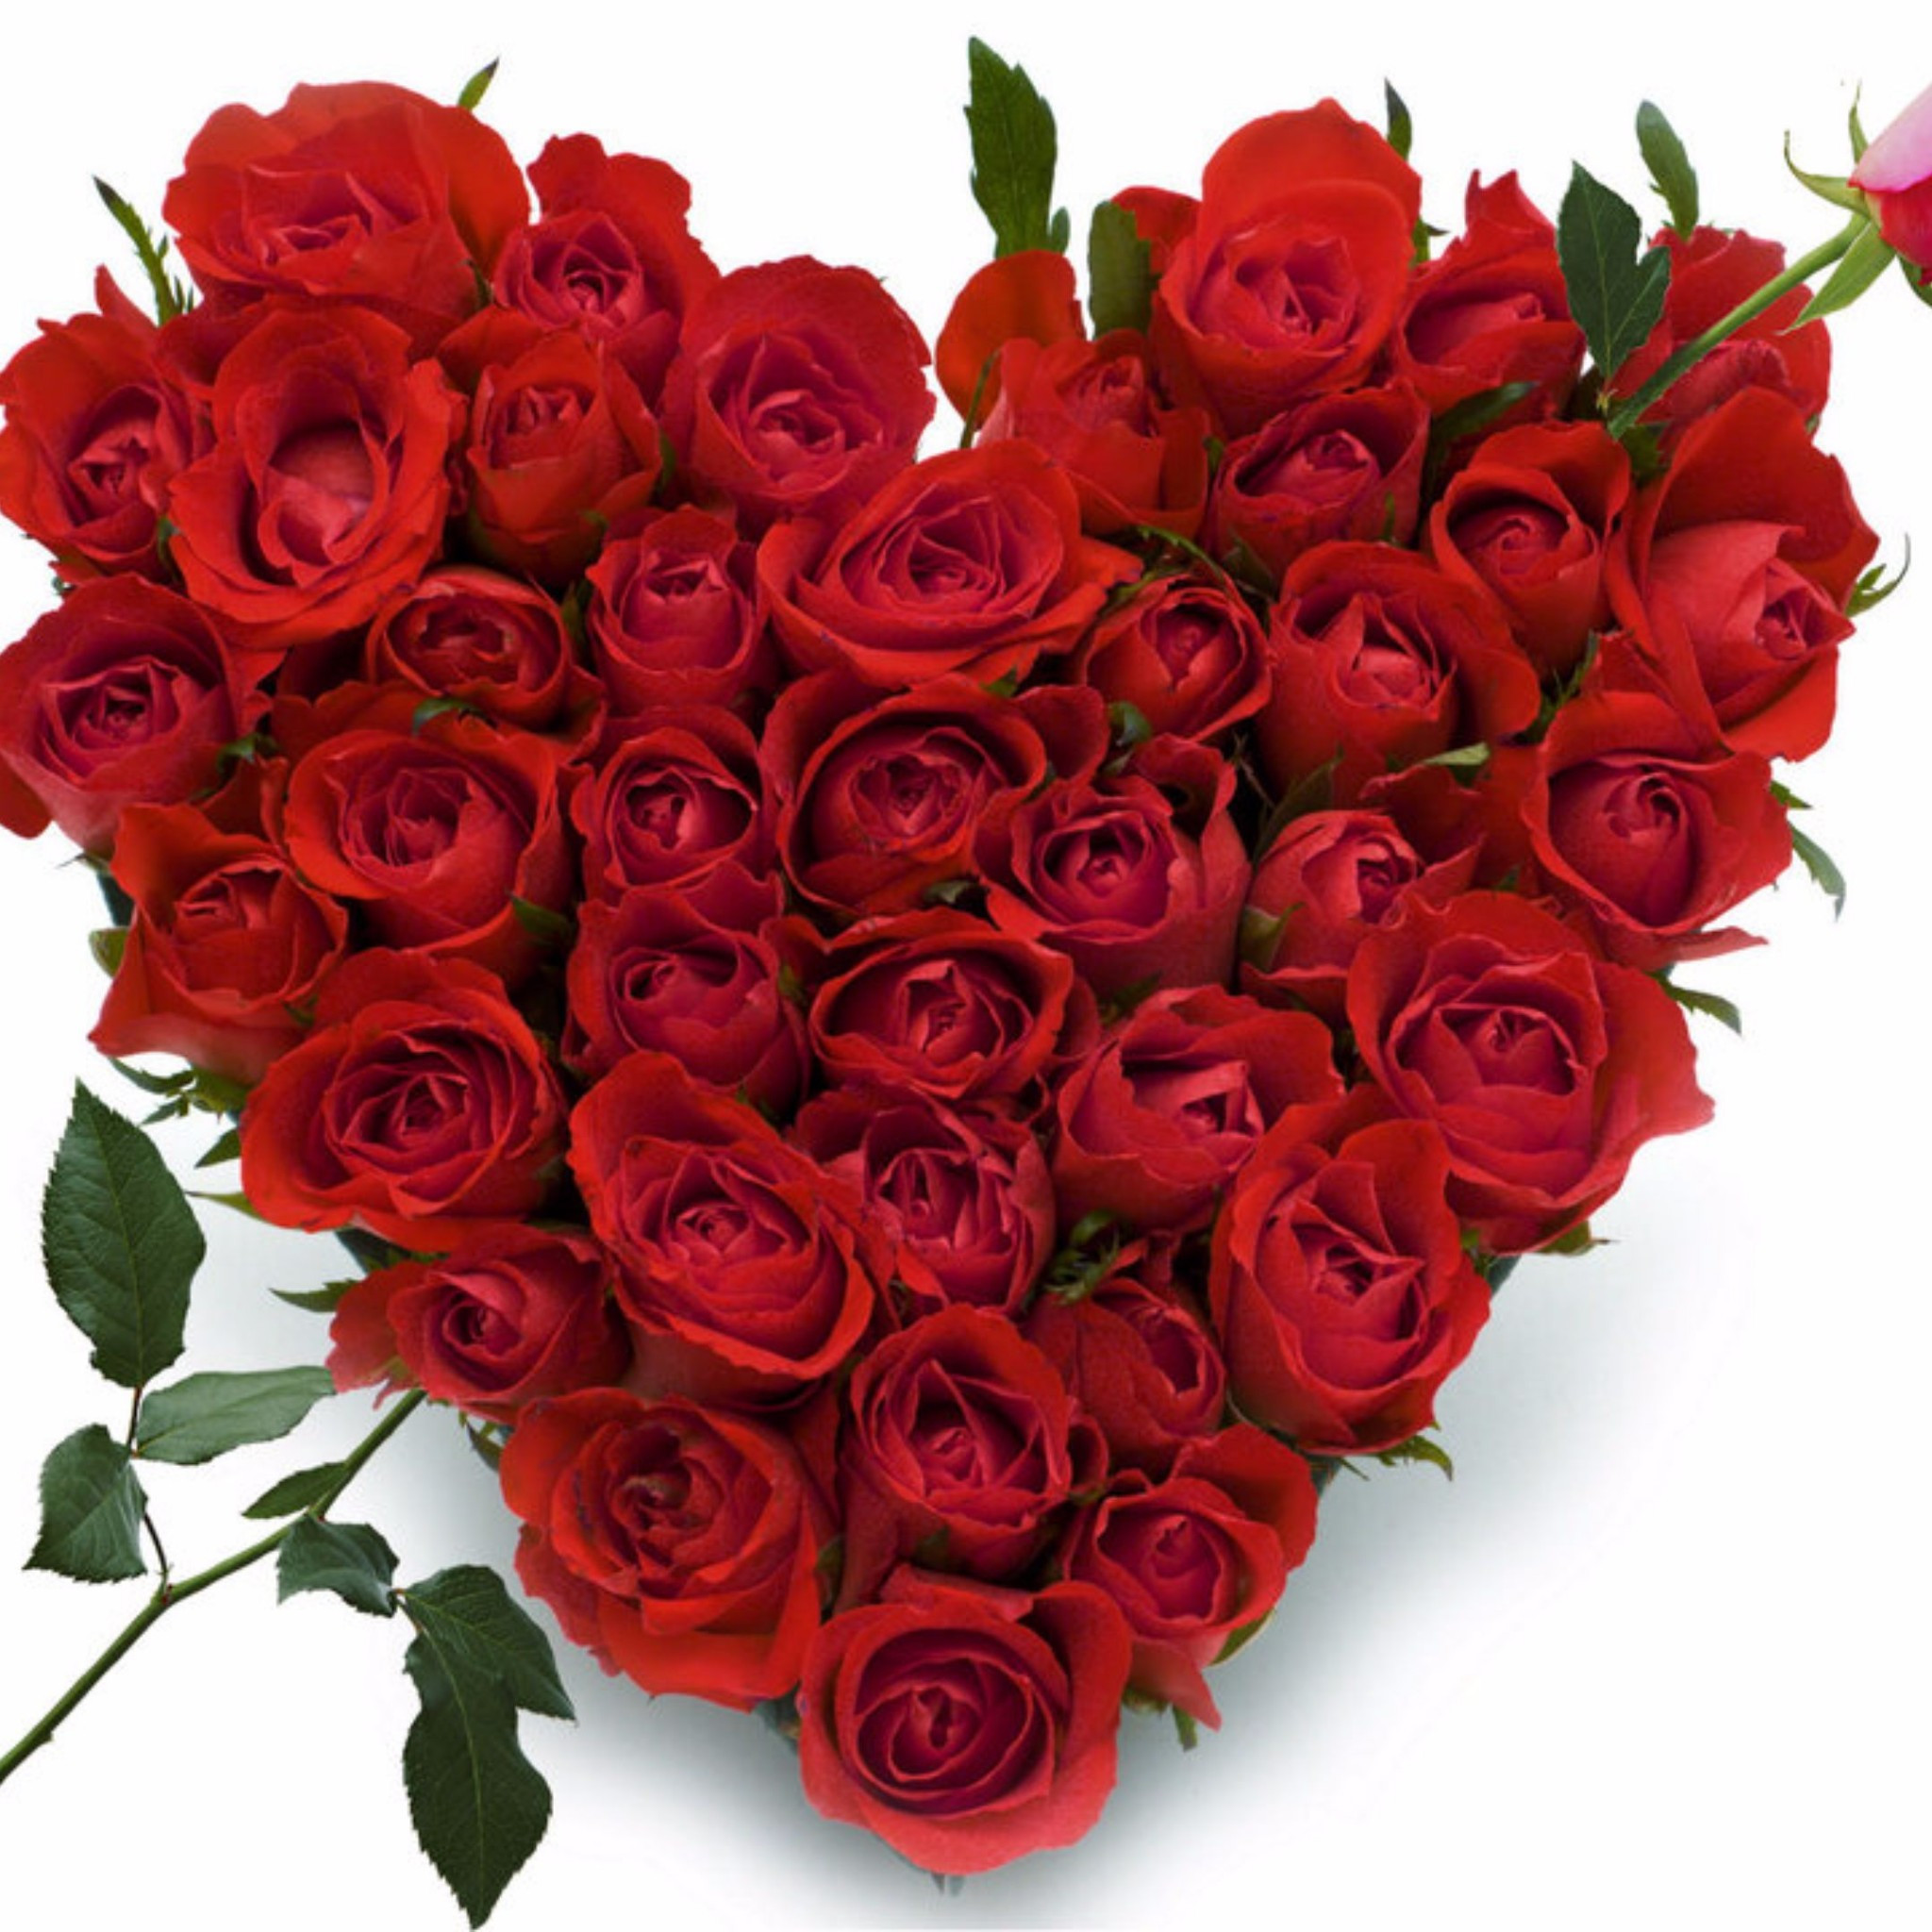 buy red glass vase of send flowers to patna flowers delivery online in patna od for heart of 50 roses